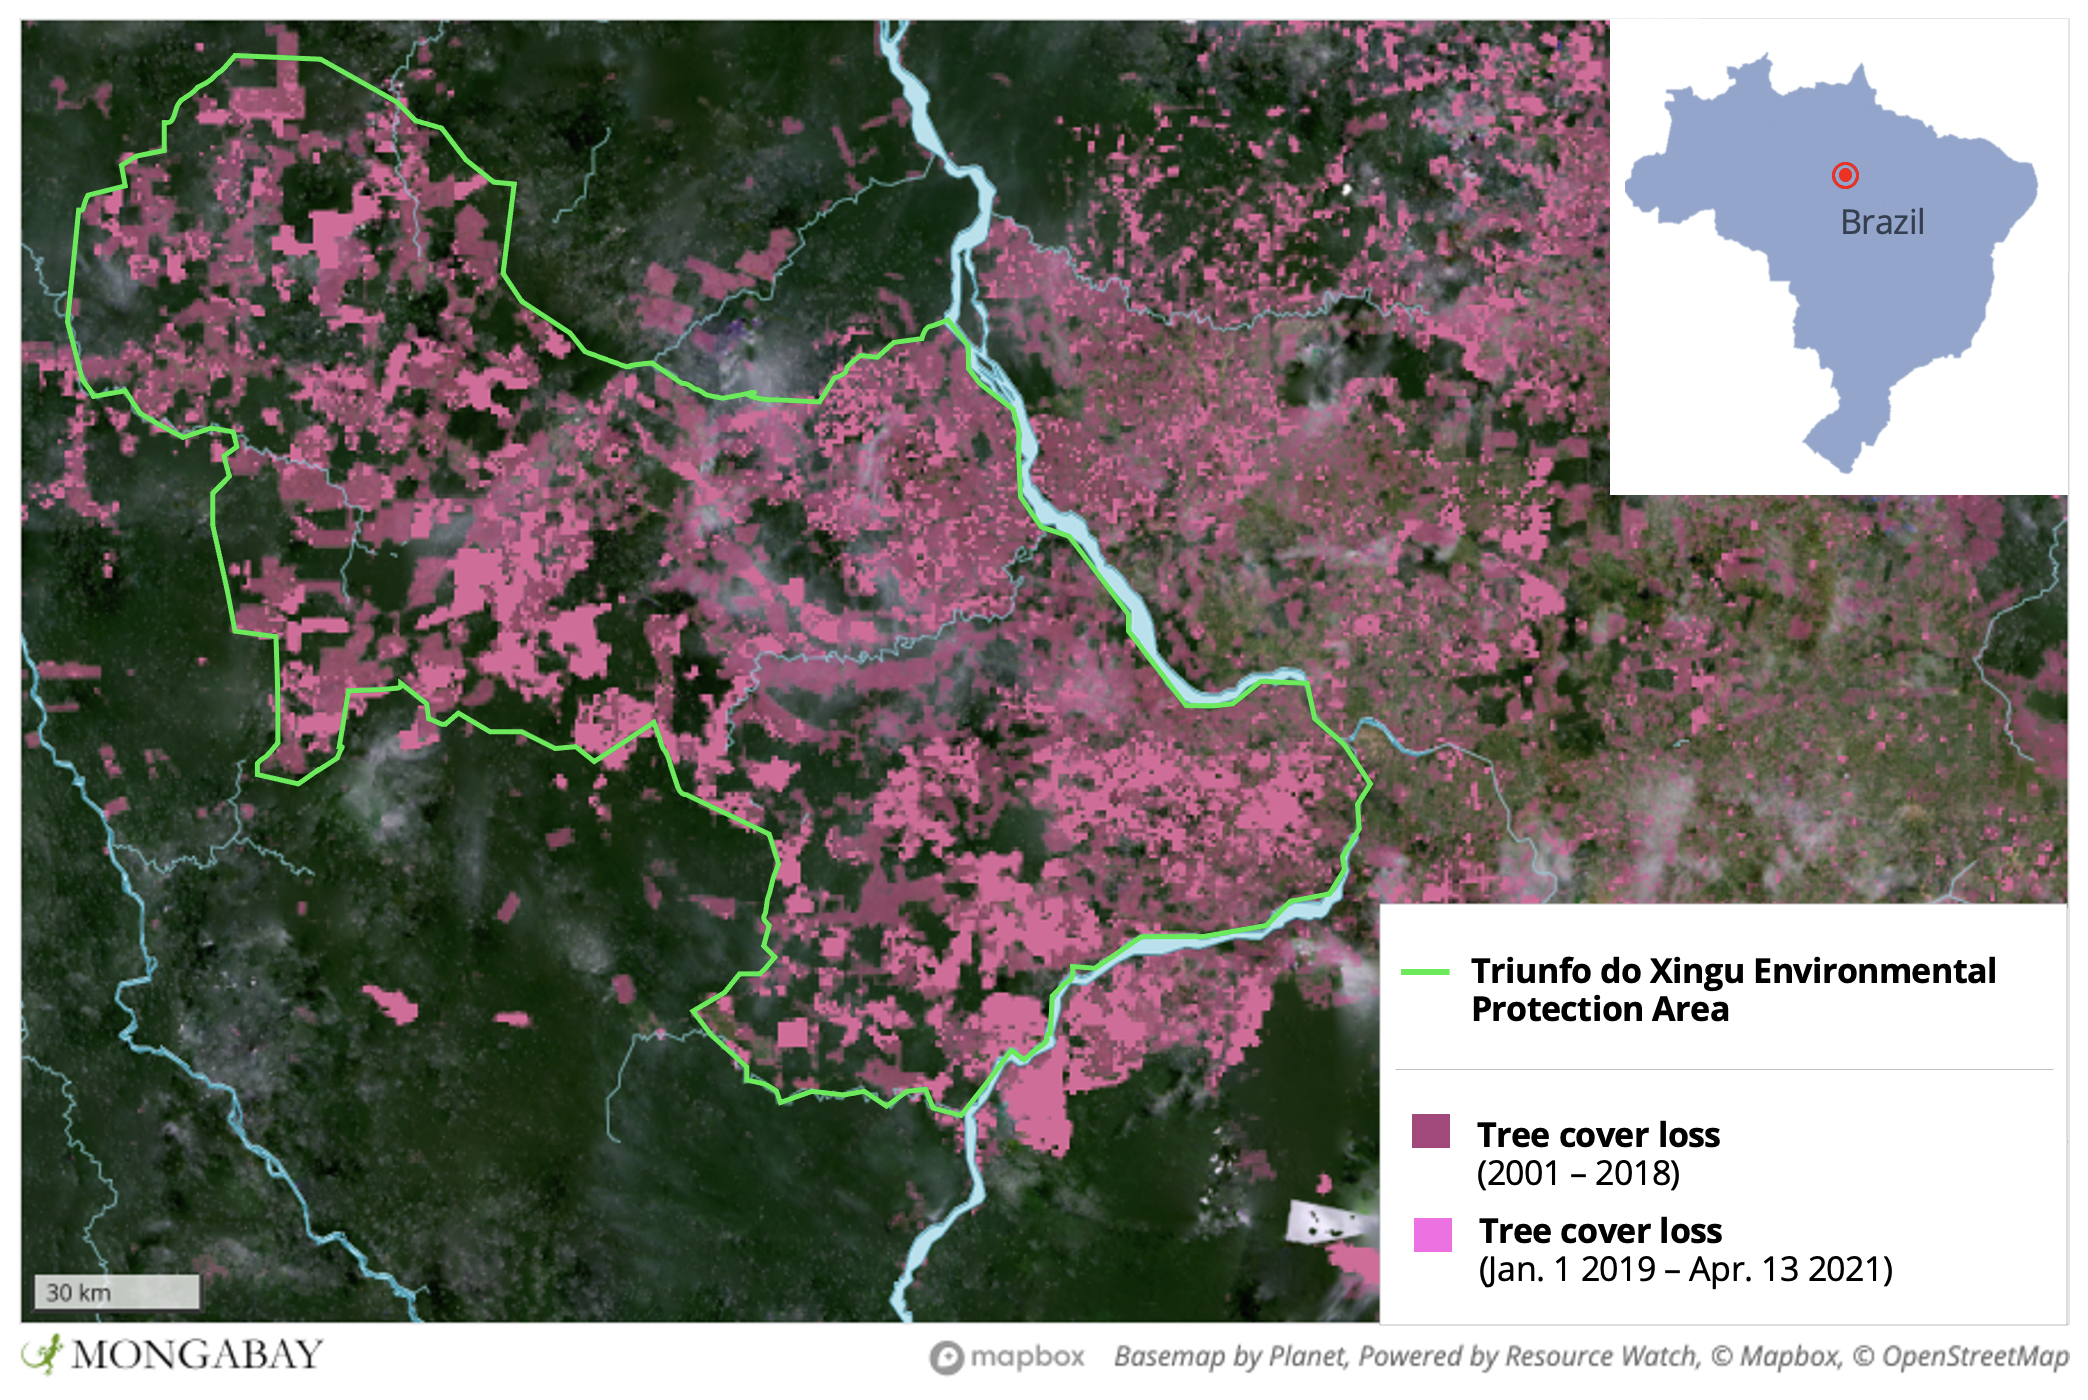 Satellite data from the University of Maryland show much of Triunfo do Xingu has been cleared since 2001.